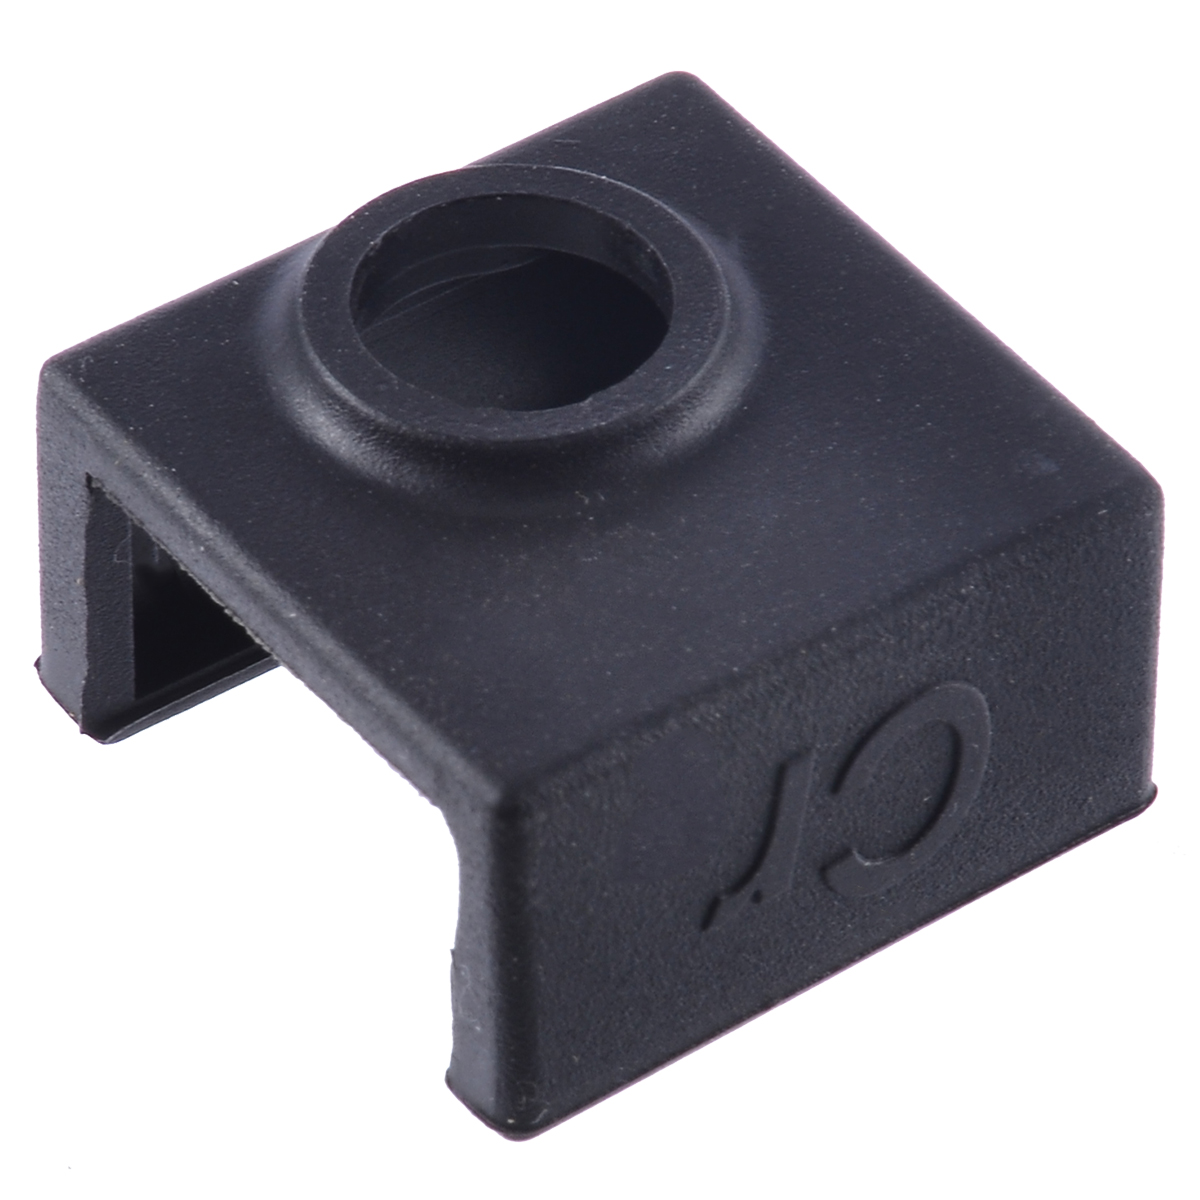 3pcs/pack 3D Printer Parts Heater Block Silicone Cover For <font><b>CR</b></font>-10 10S <font><b>10S4</b></font> 10S5 Ender 3 MK7 MK8 MK9 Hot End image